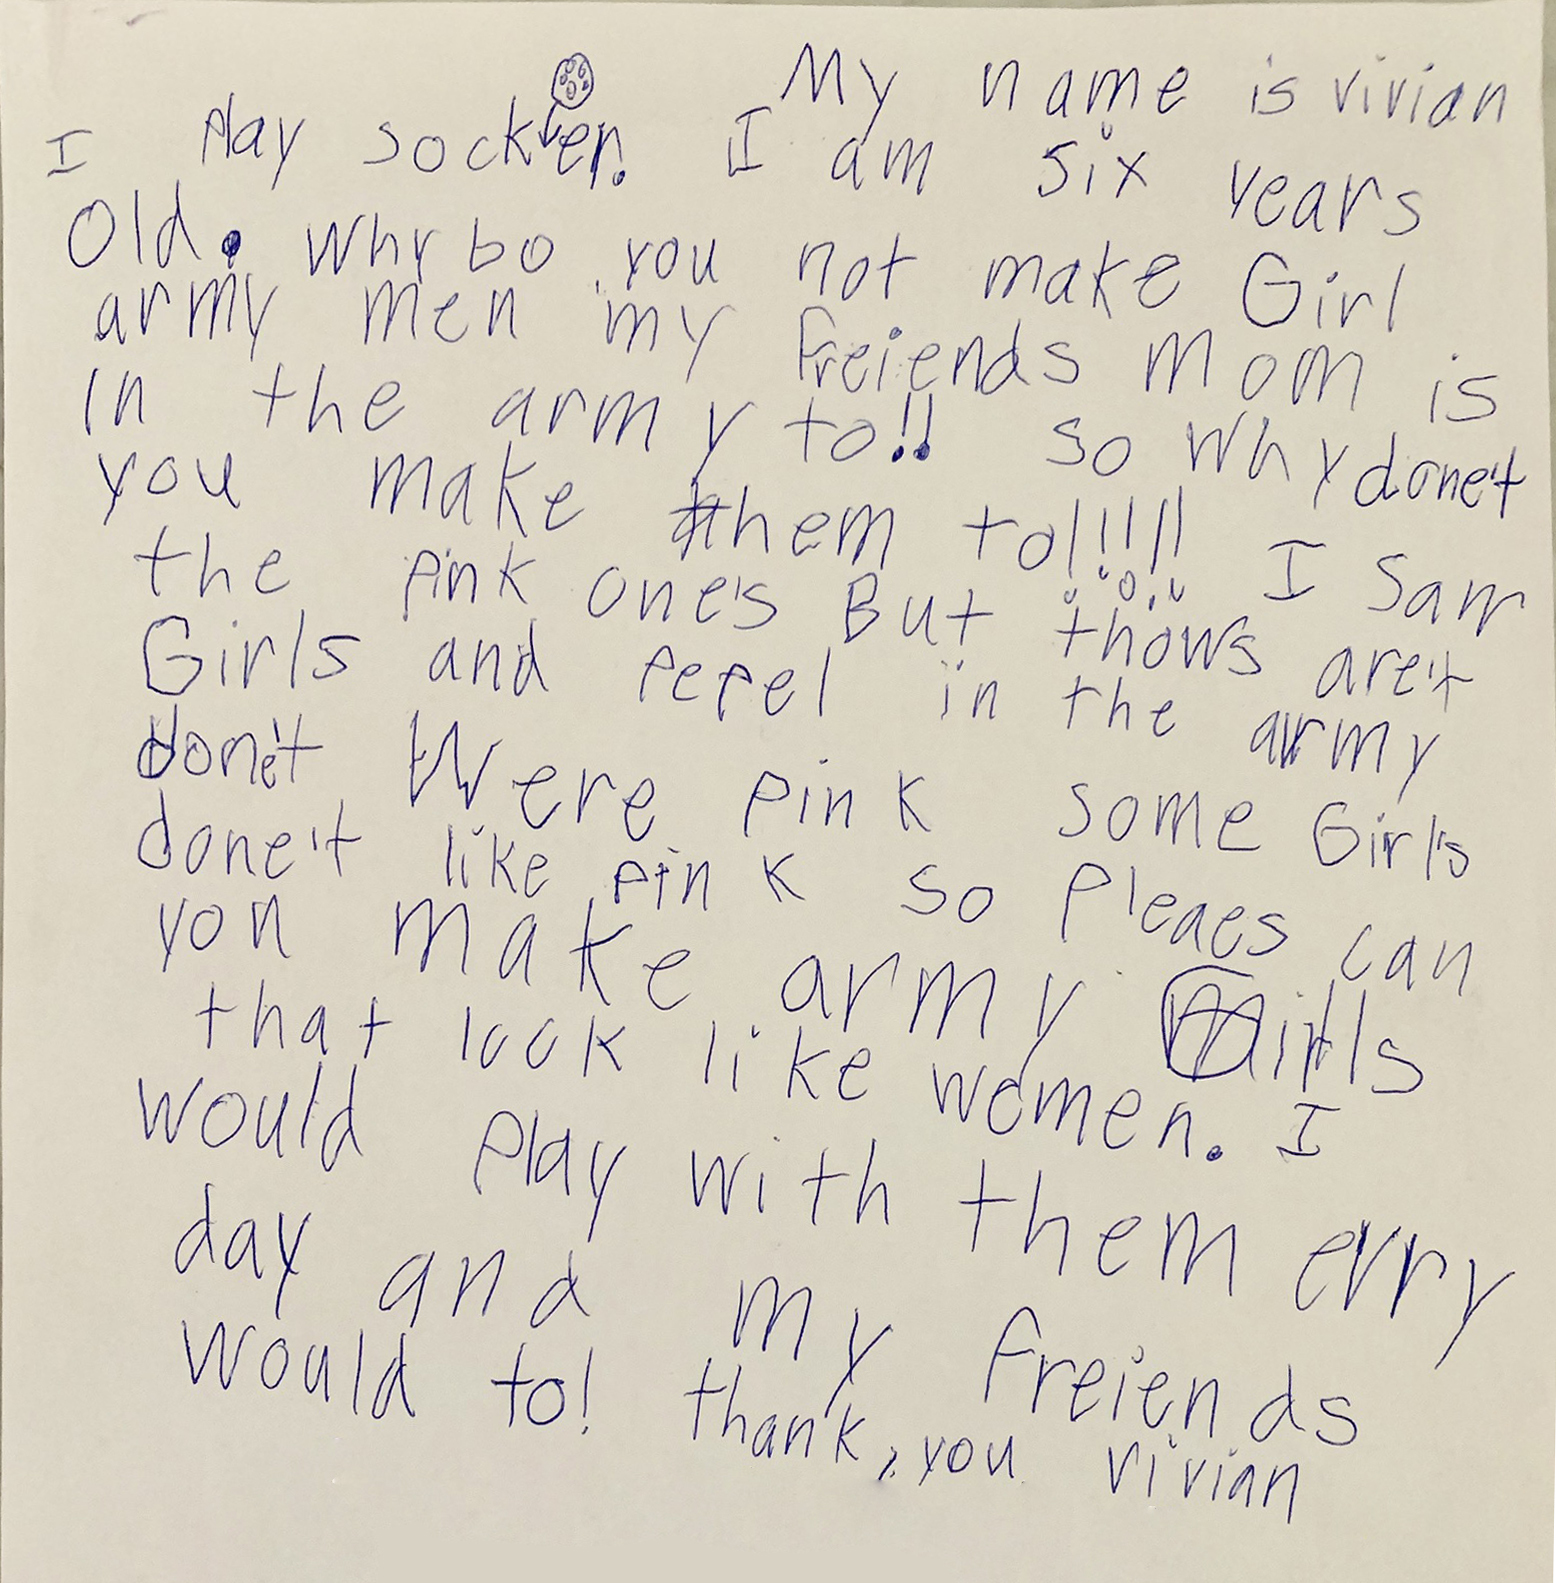 Her Own Toy Story: How A 6-Year-Old Girl's Letter Launched